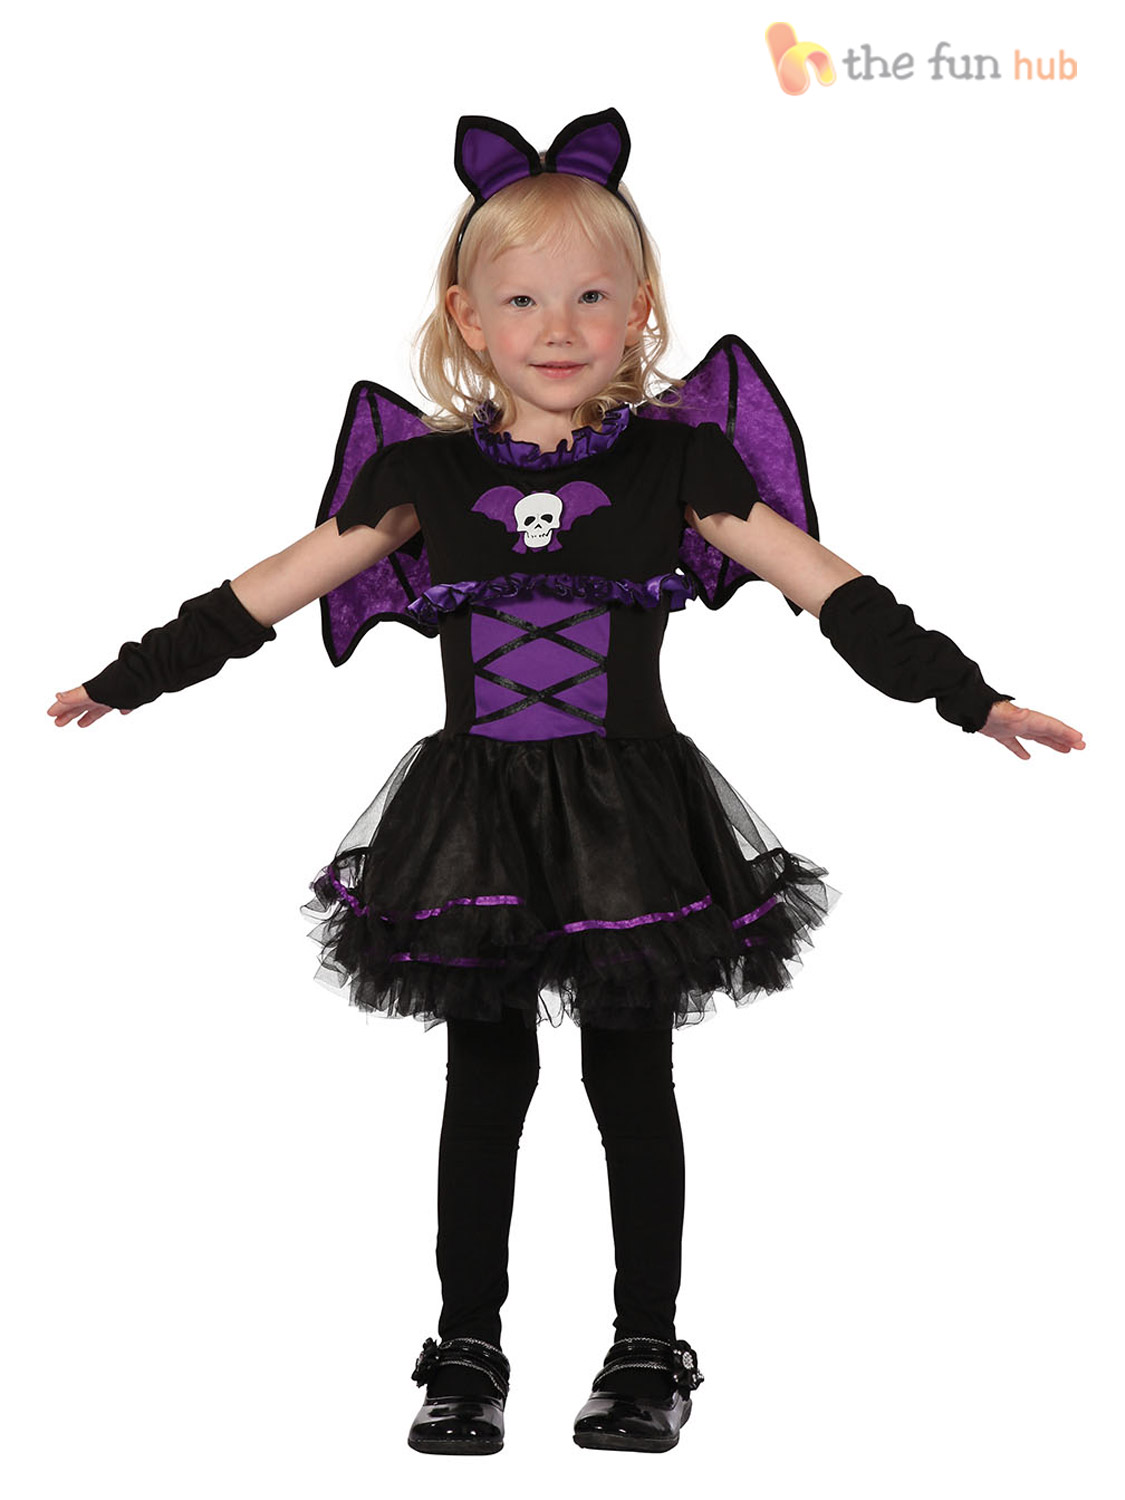 toddler girls halloween costume age 2 3 witch - Girls Halloween Costumes For Kids